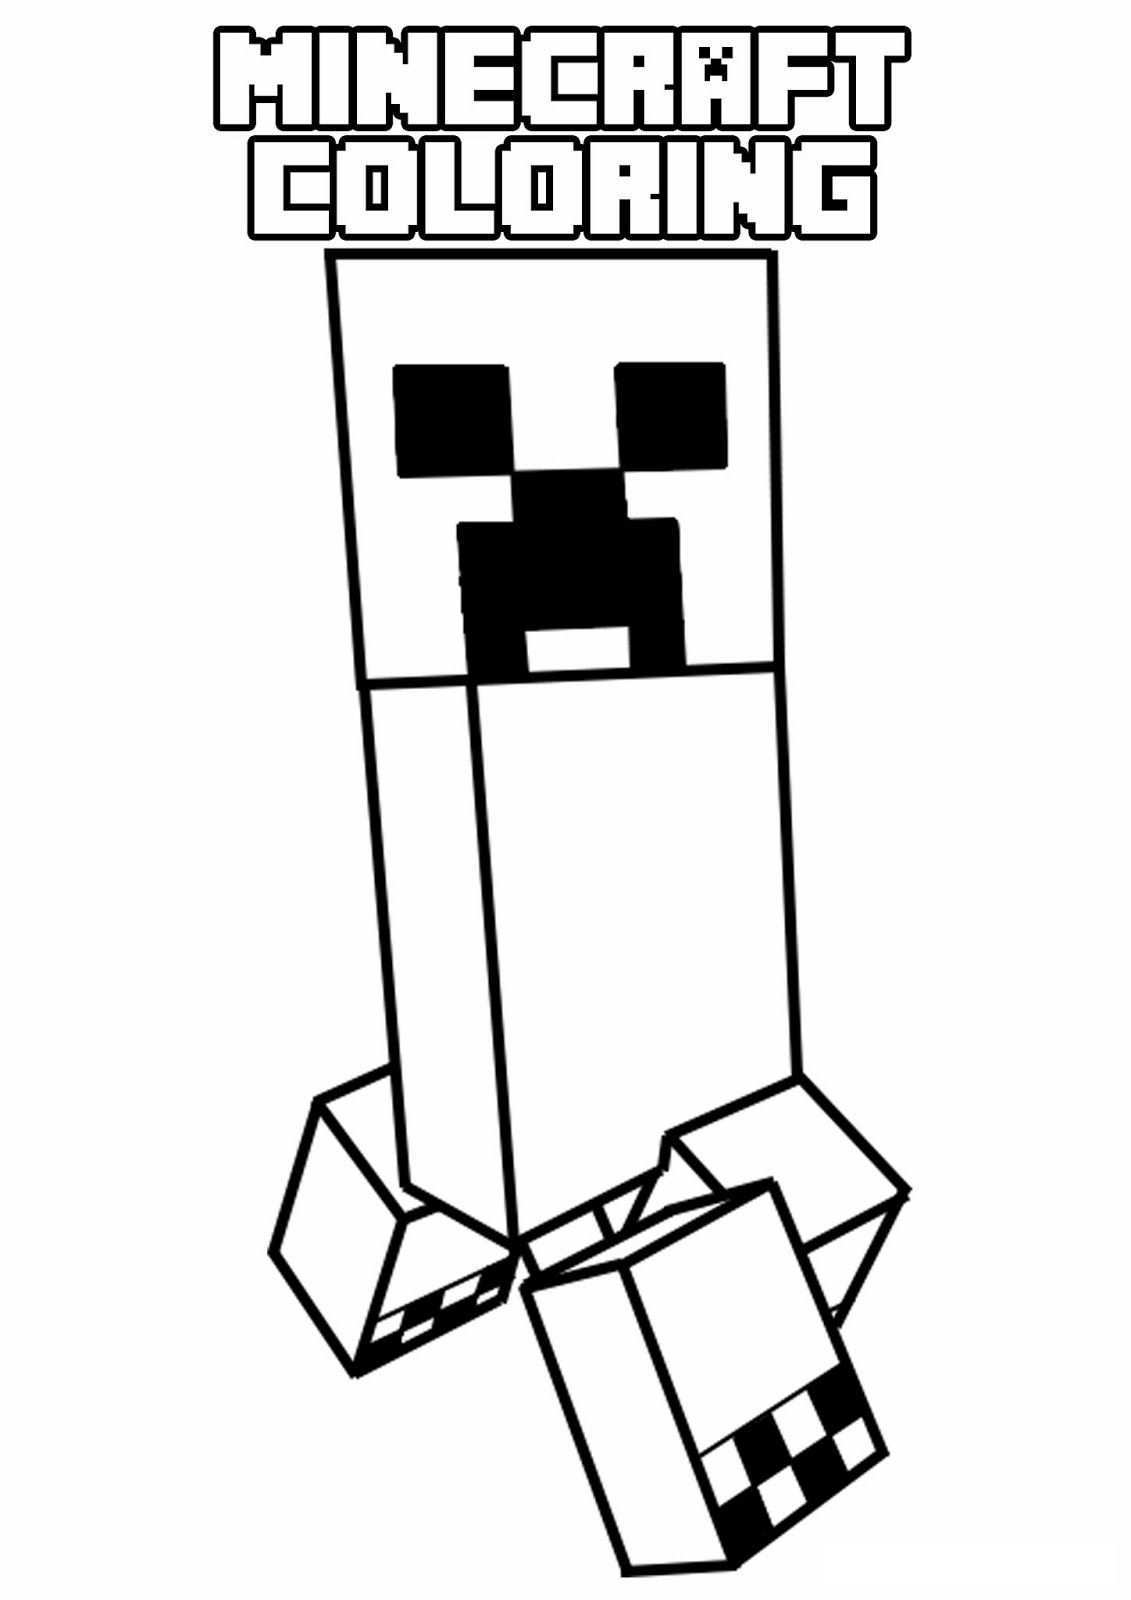 Minecraft Coloring Pages For Kids 4 Coloring Pages For Kids Kleurplaten Minecraft Afbeeldingen